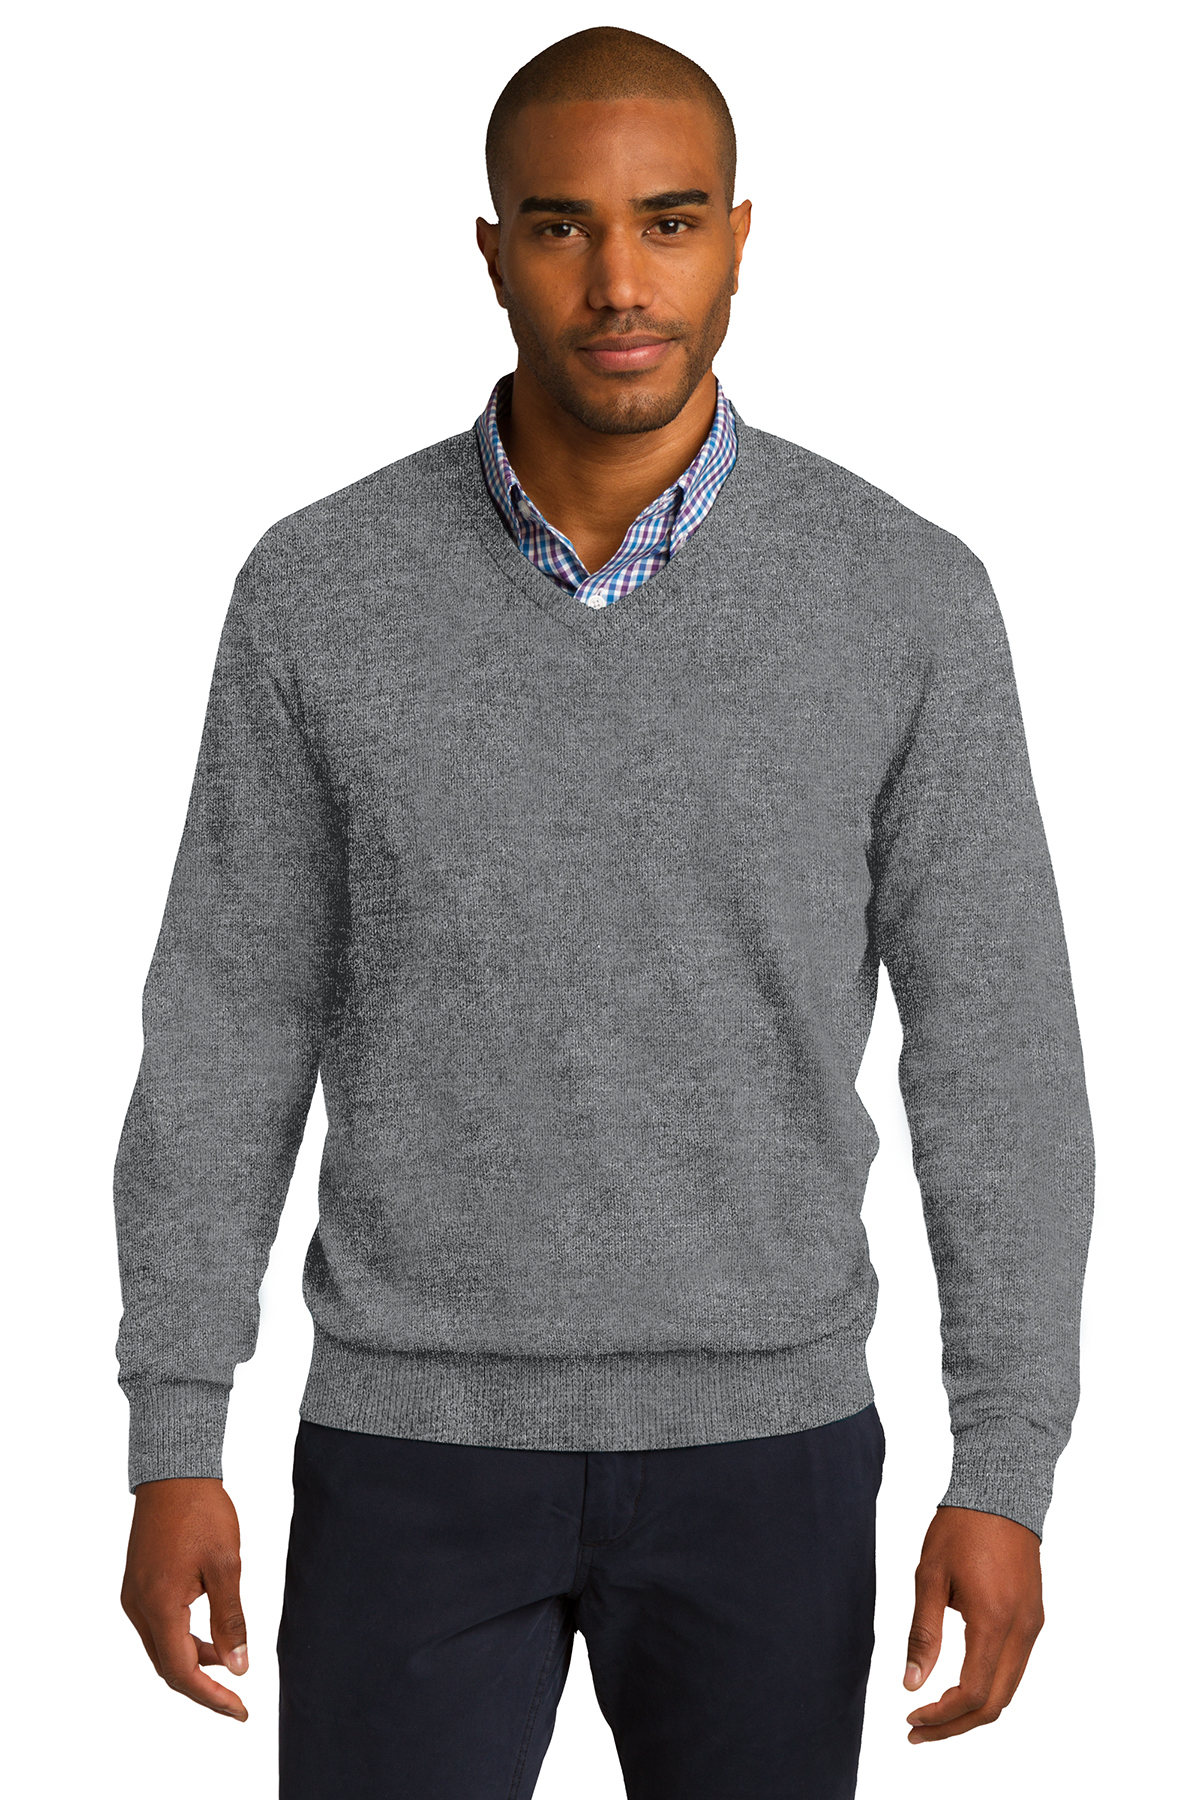 click to view Medium Heather Grey